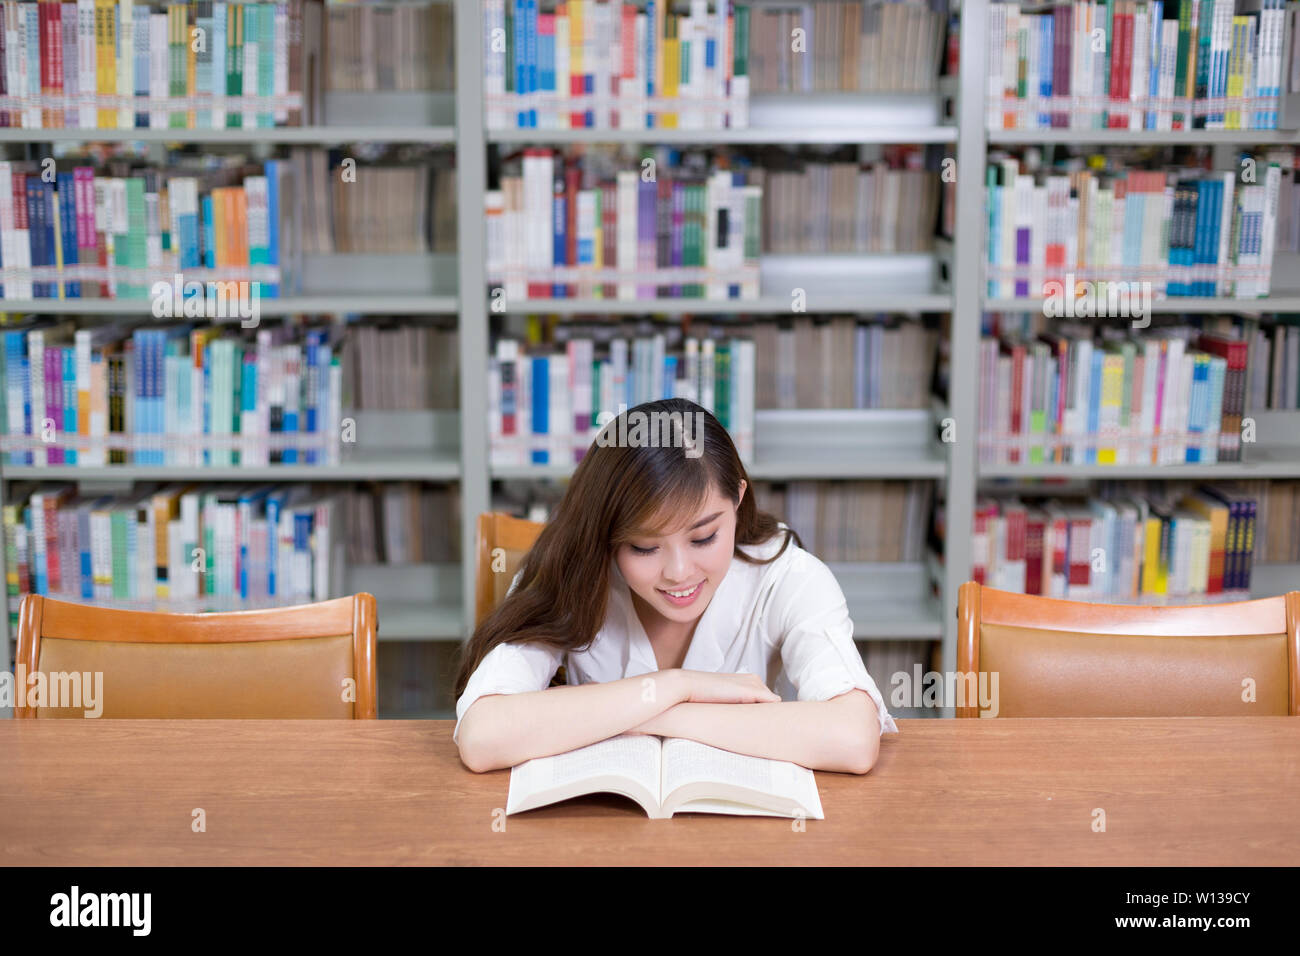 Chinese Woman Read Library Stock Photos Chinese Woman Read